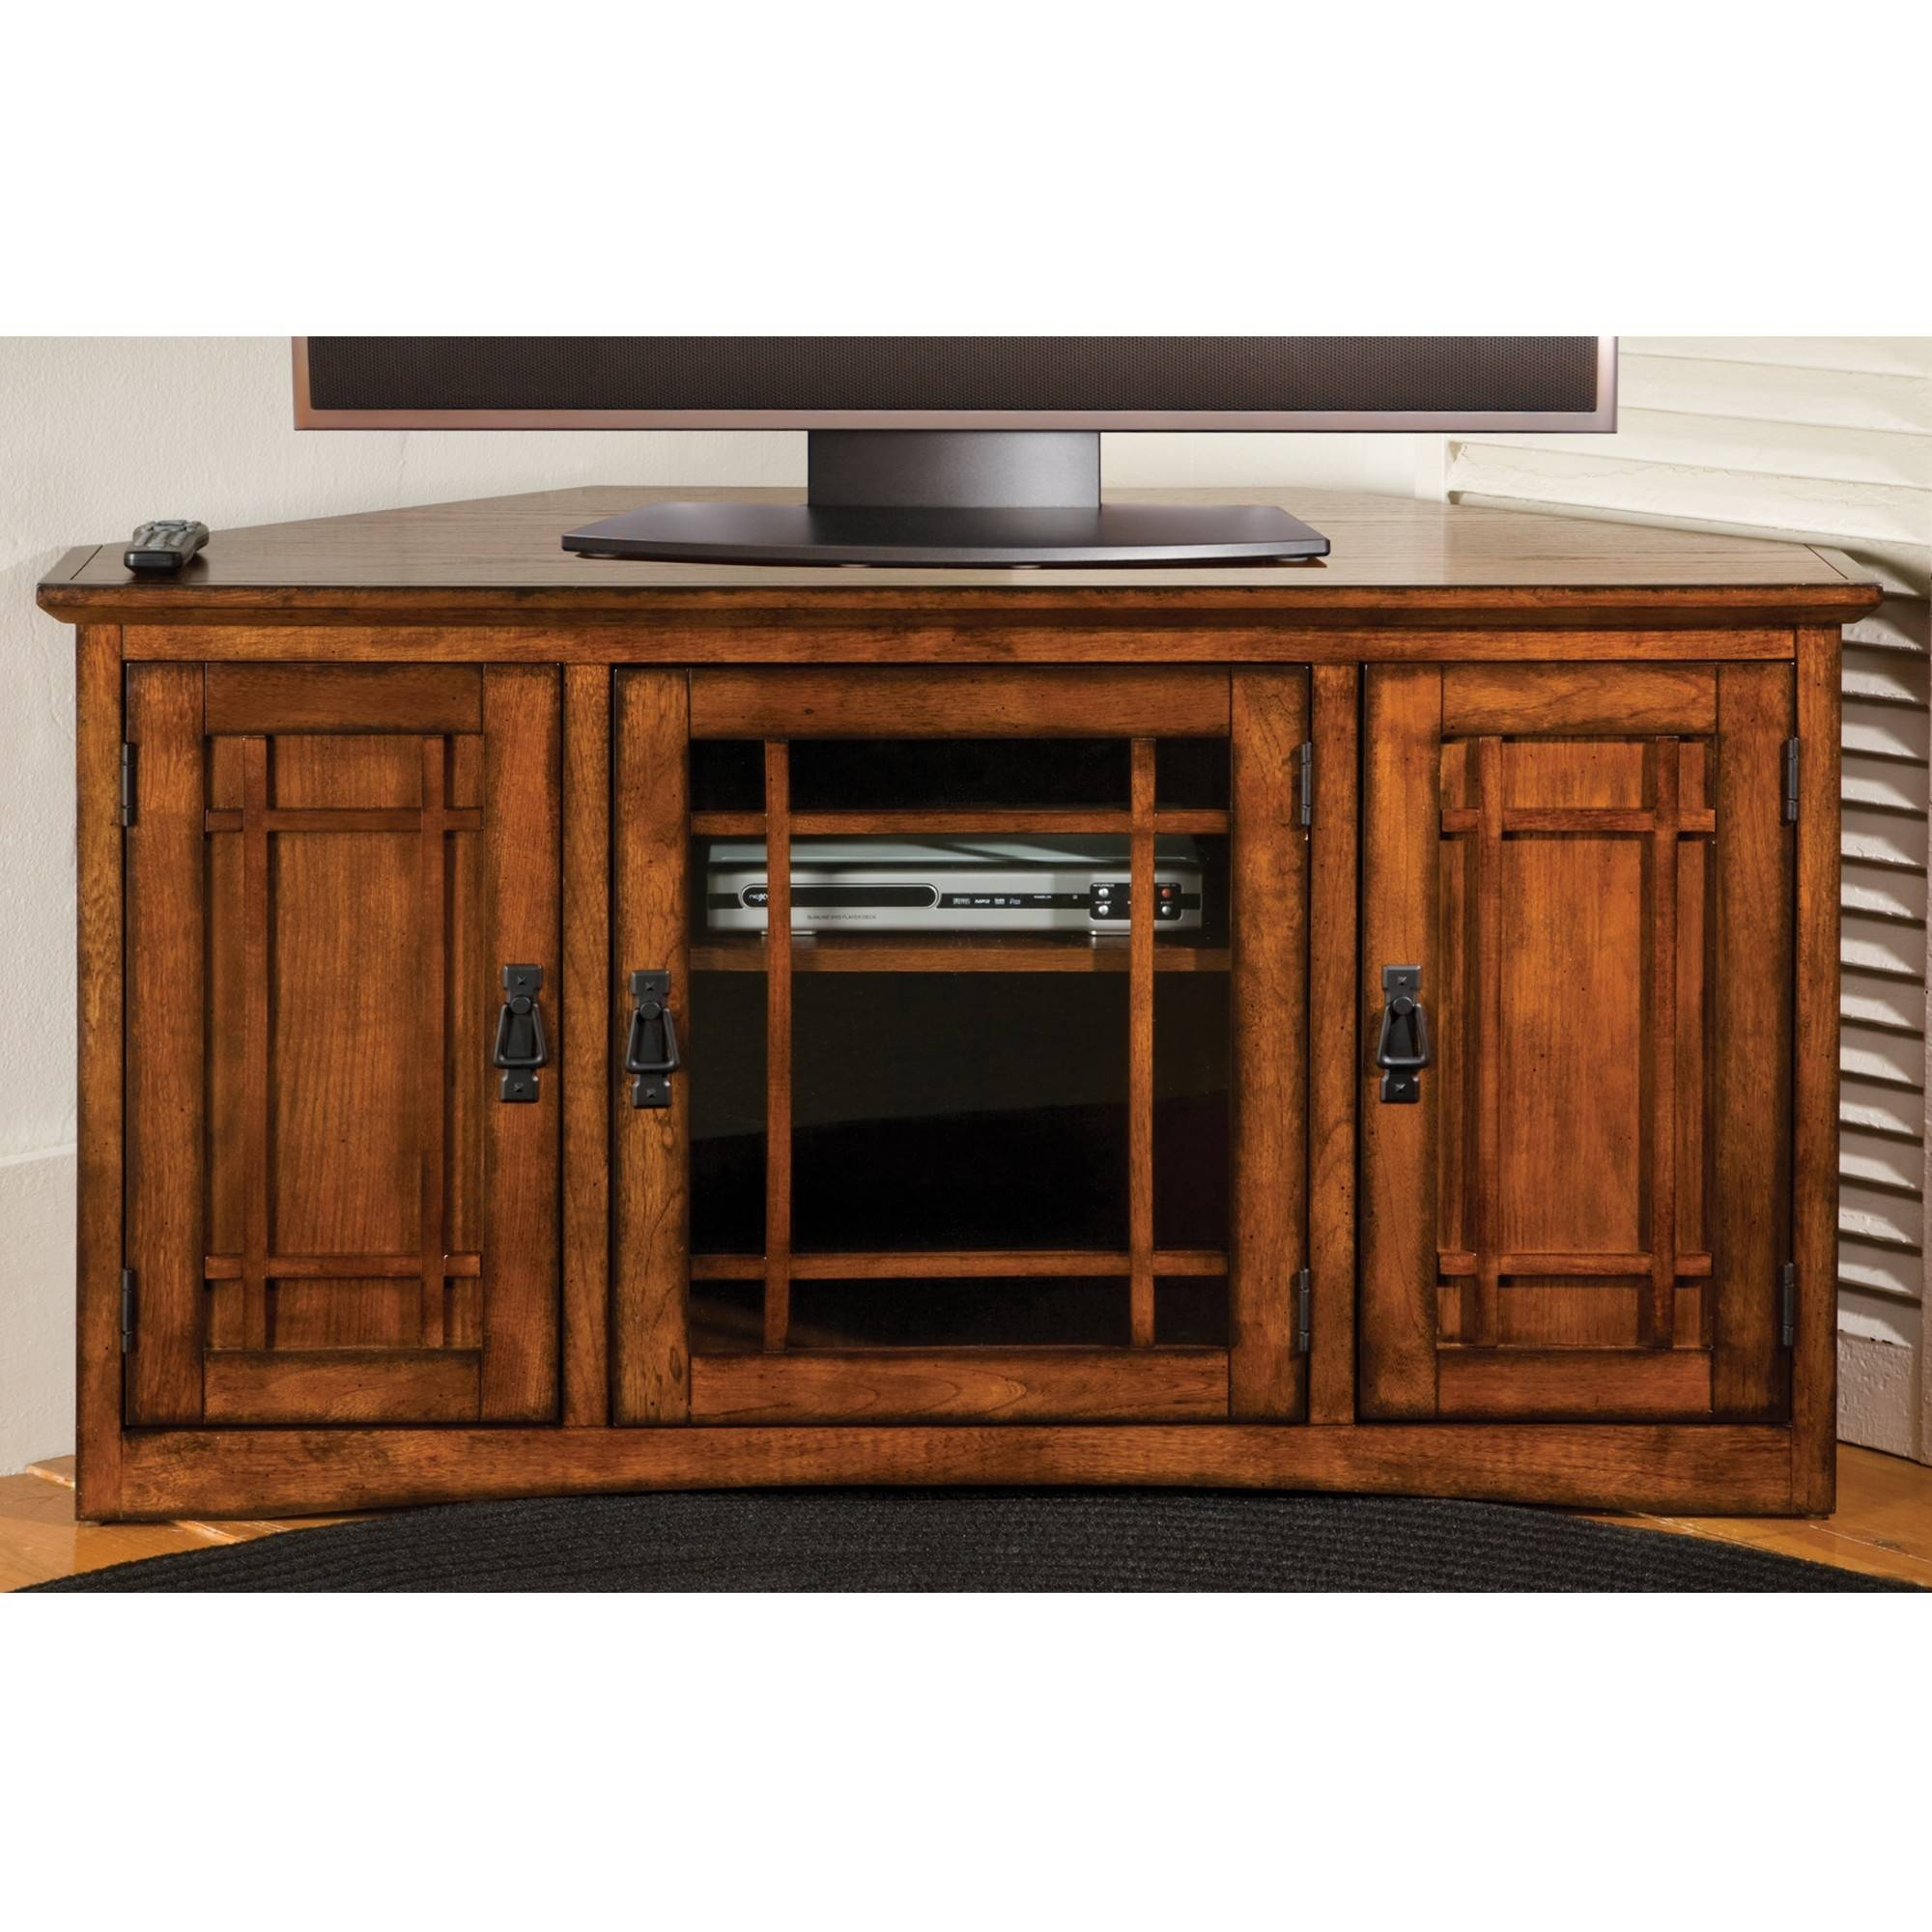 Mission Corner Tv Cabinet | Sturbridge Yankee Workshop pertaining to Black Corner Tv Cabinets With Glass Doors (Image 7 of 15)